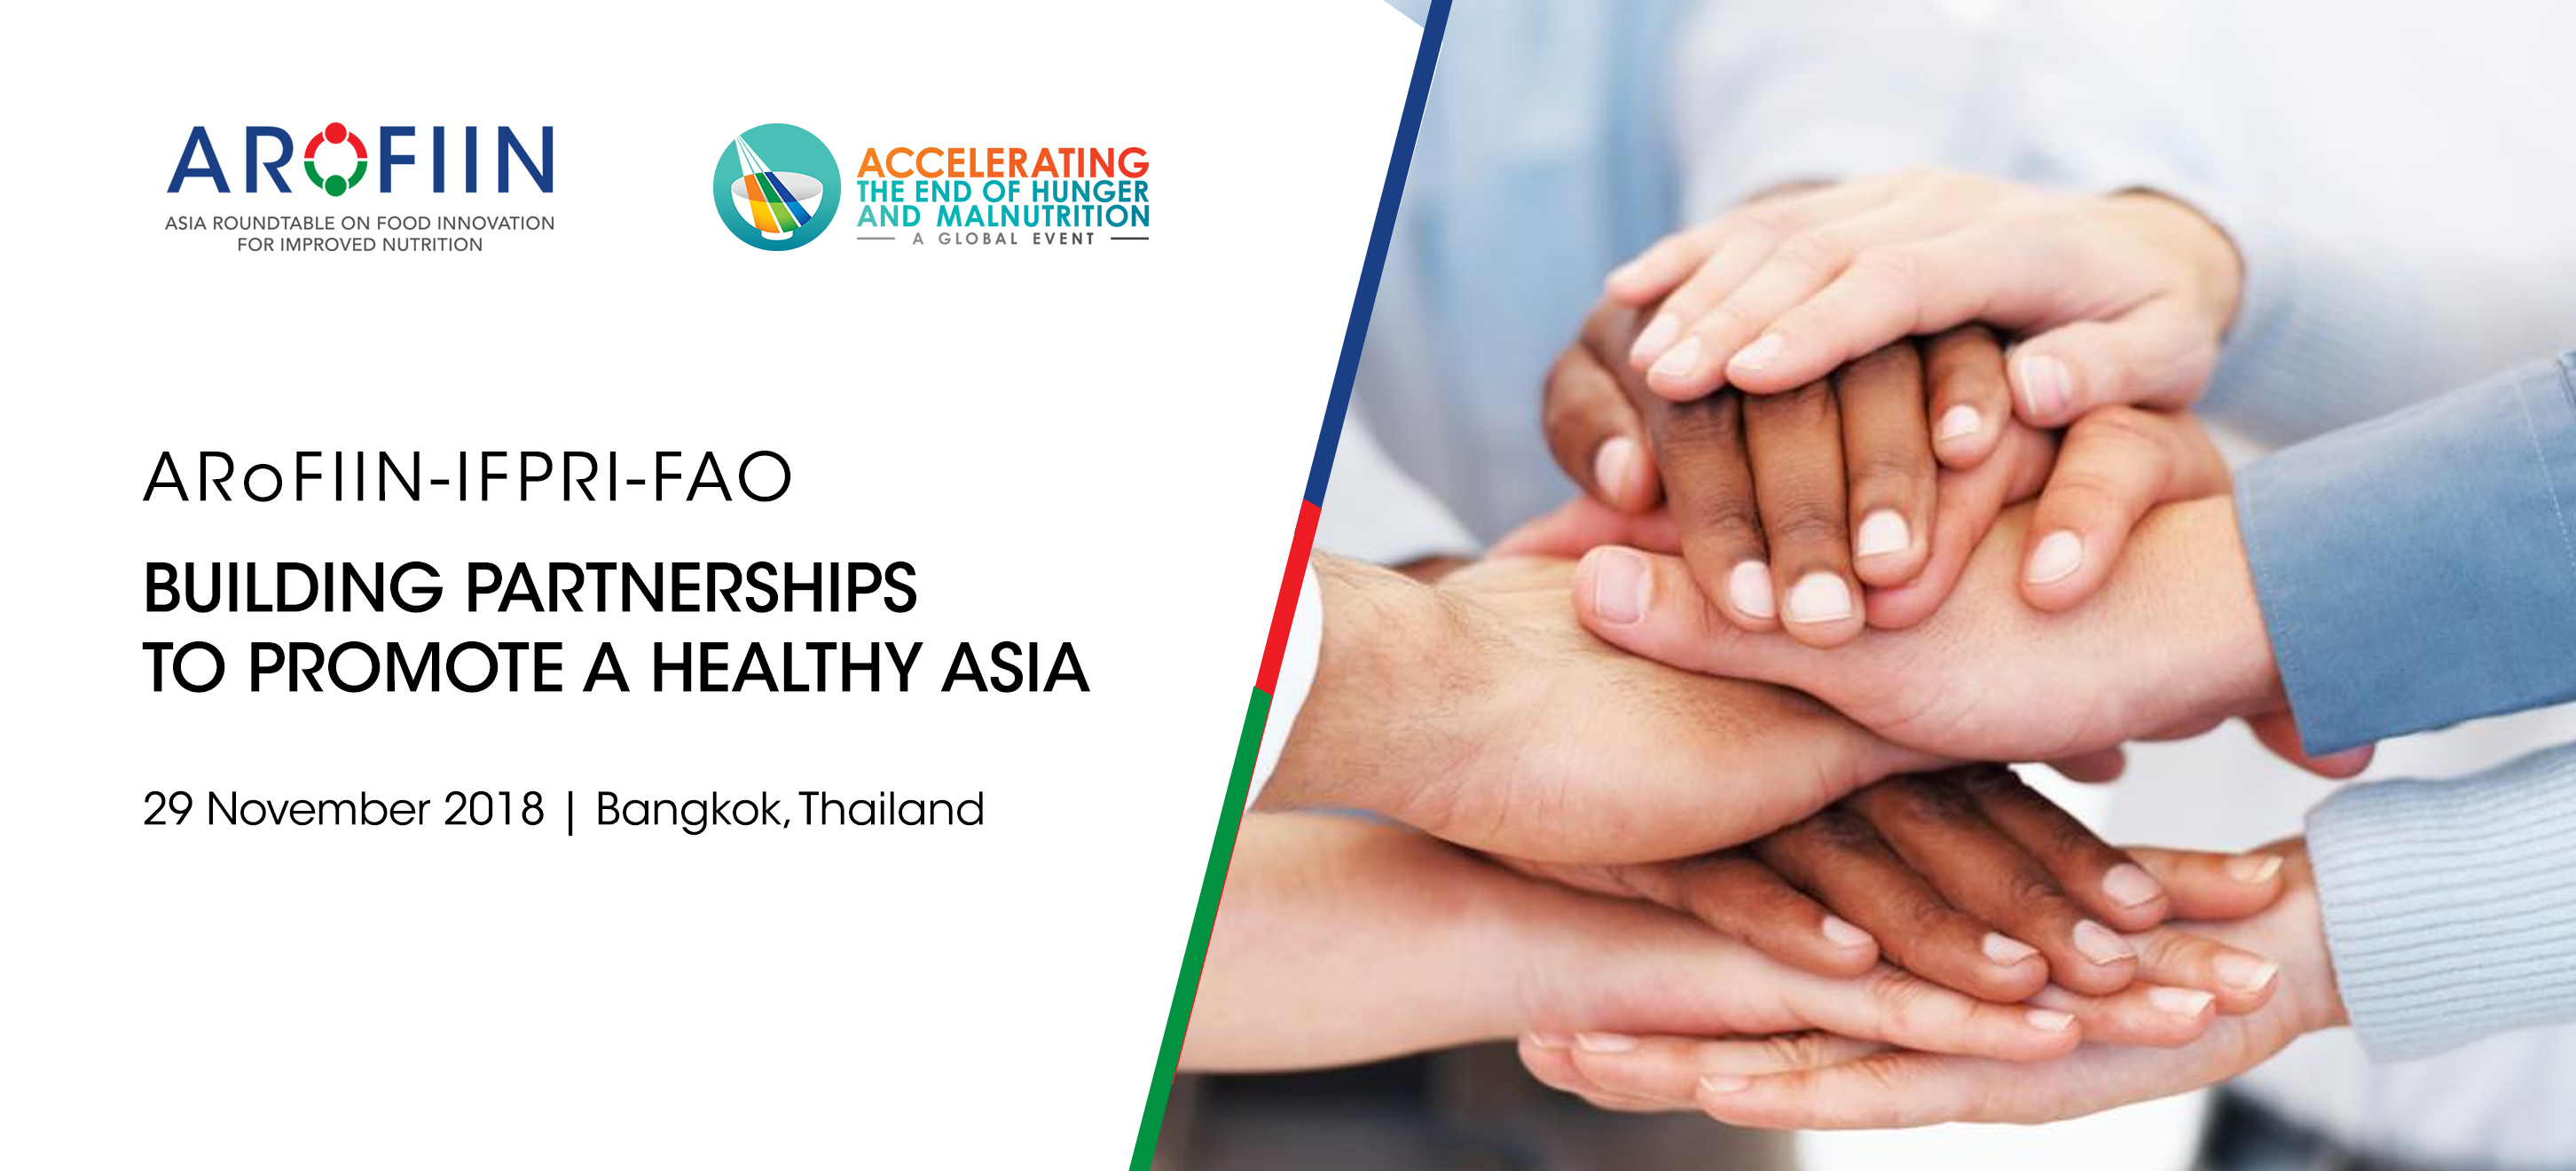 29 November 2018: Building Partnerships to Promote a Healthy Asia